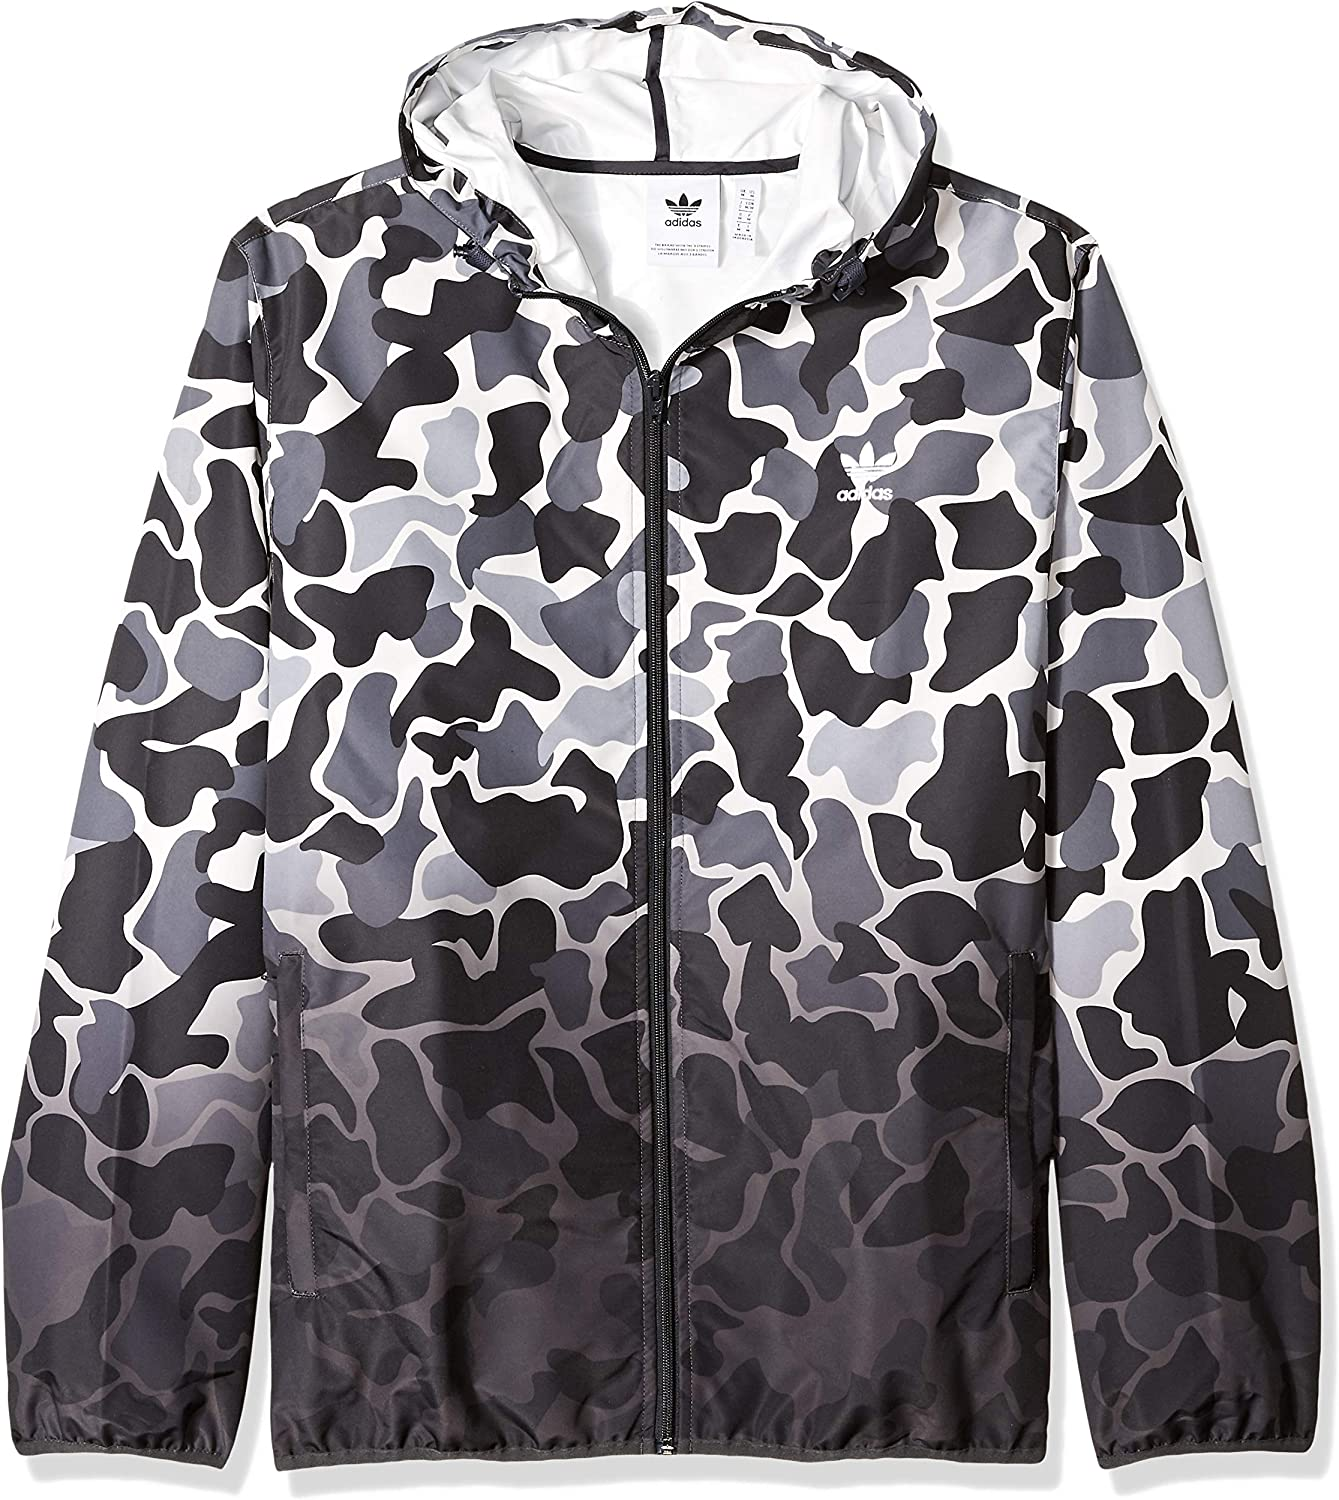 adidas Originals Men's Camo Dipped Windbreaker